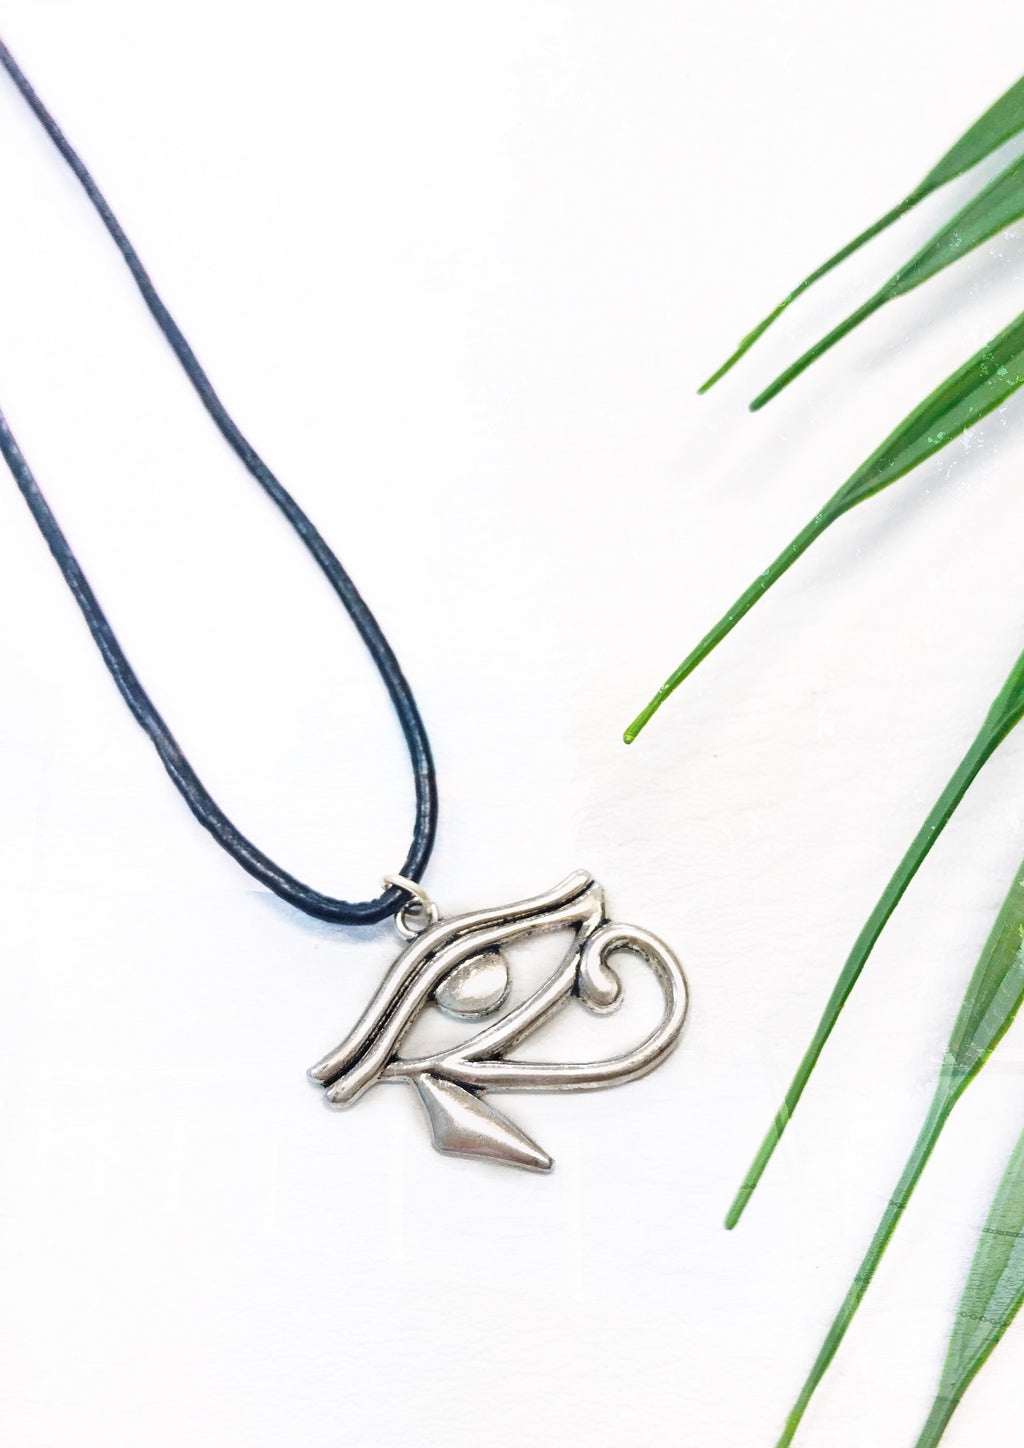 black leather eye of horus necklace